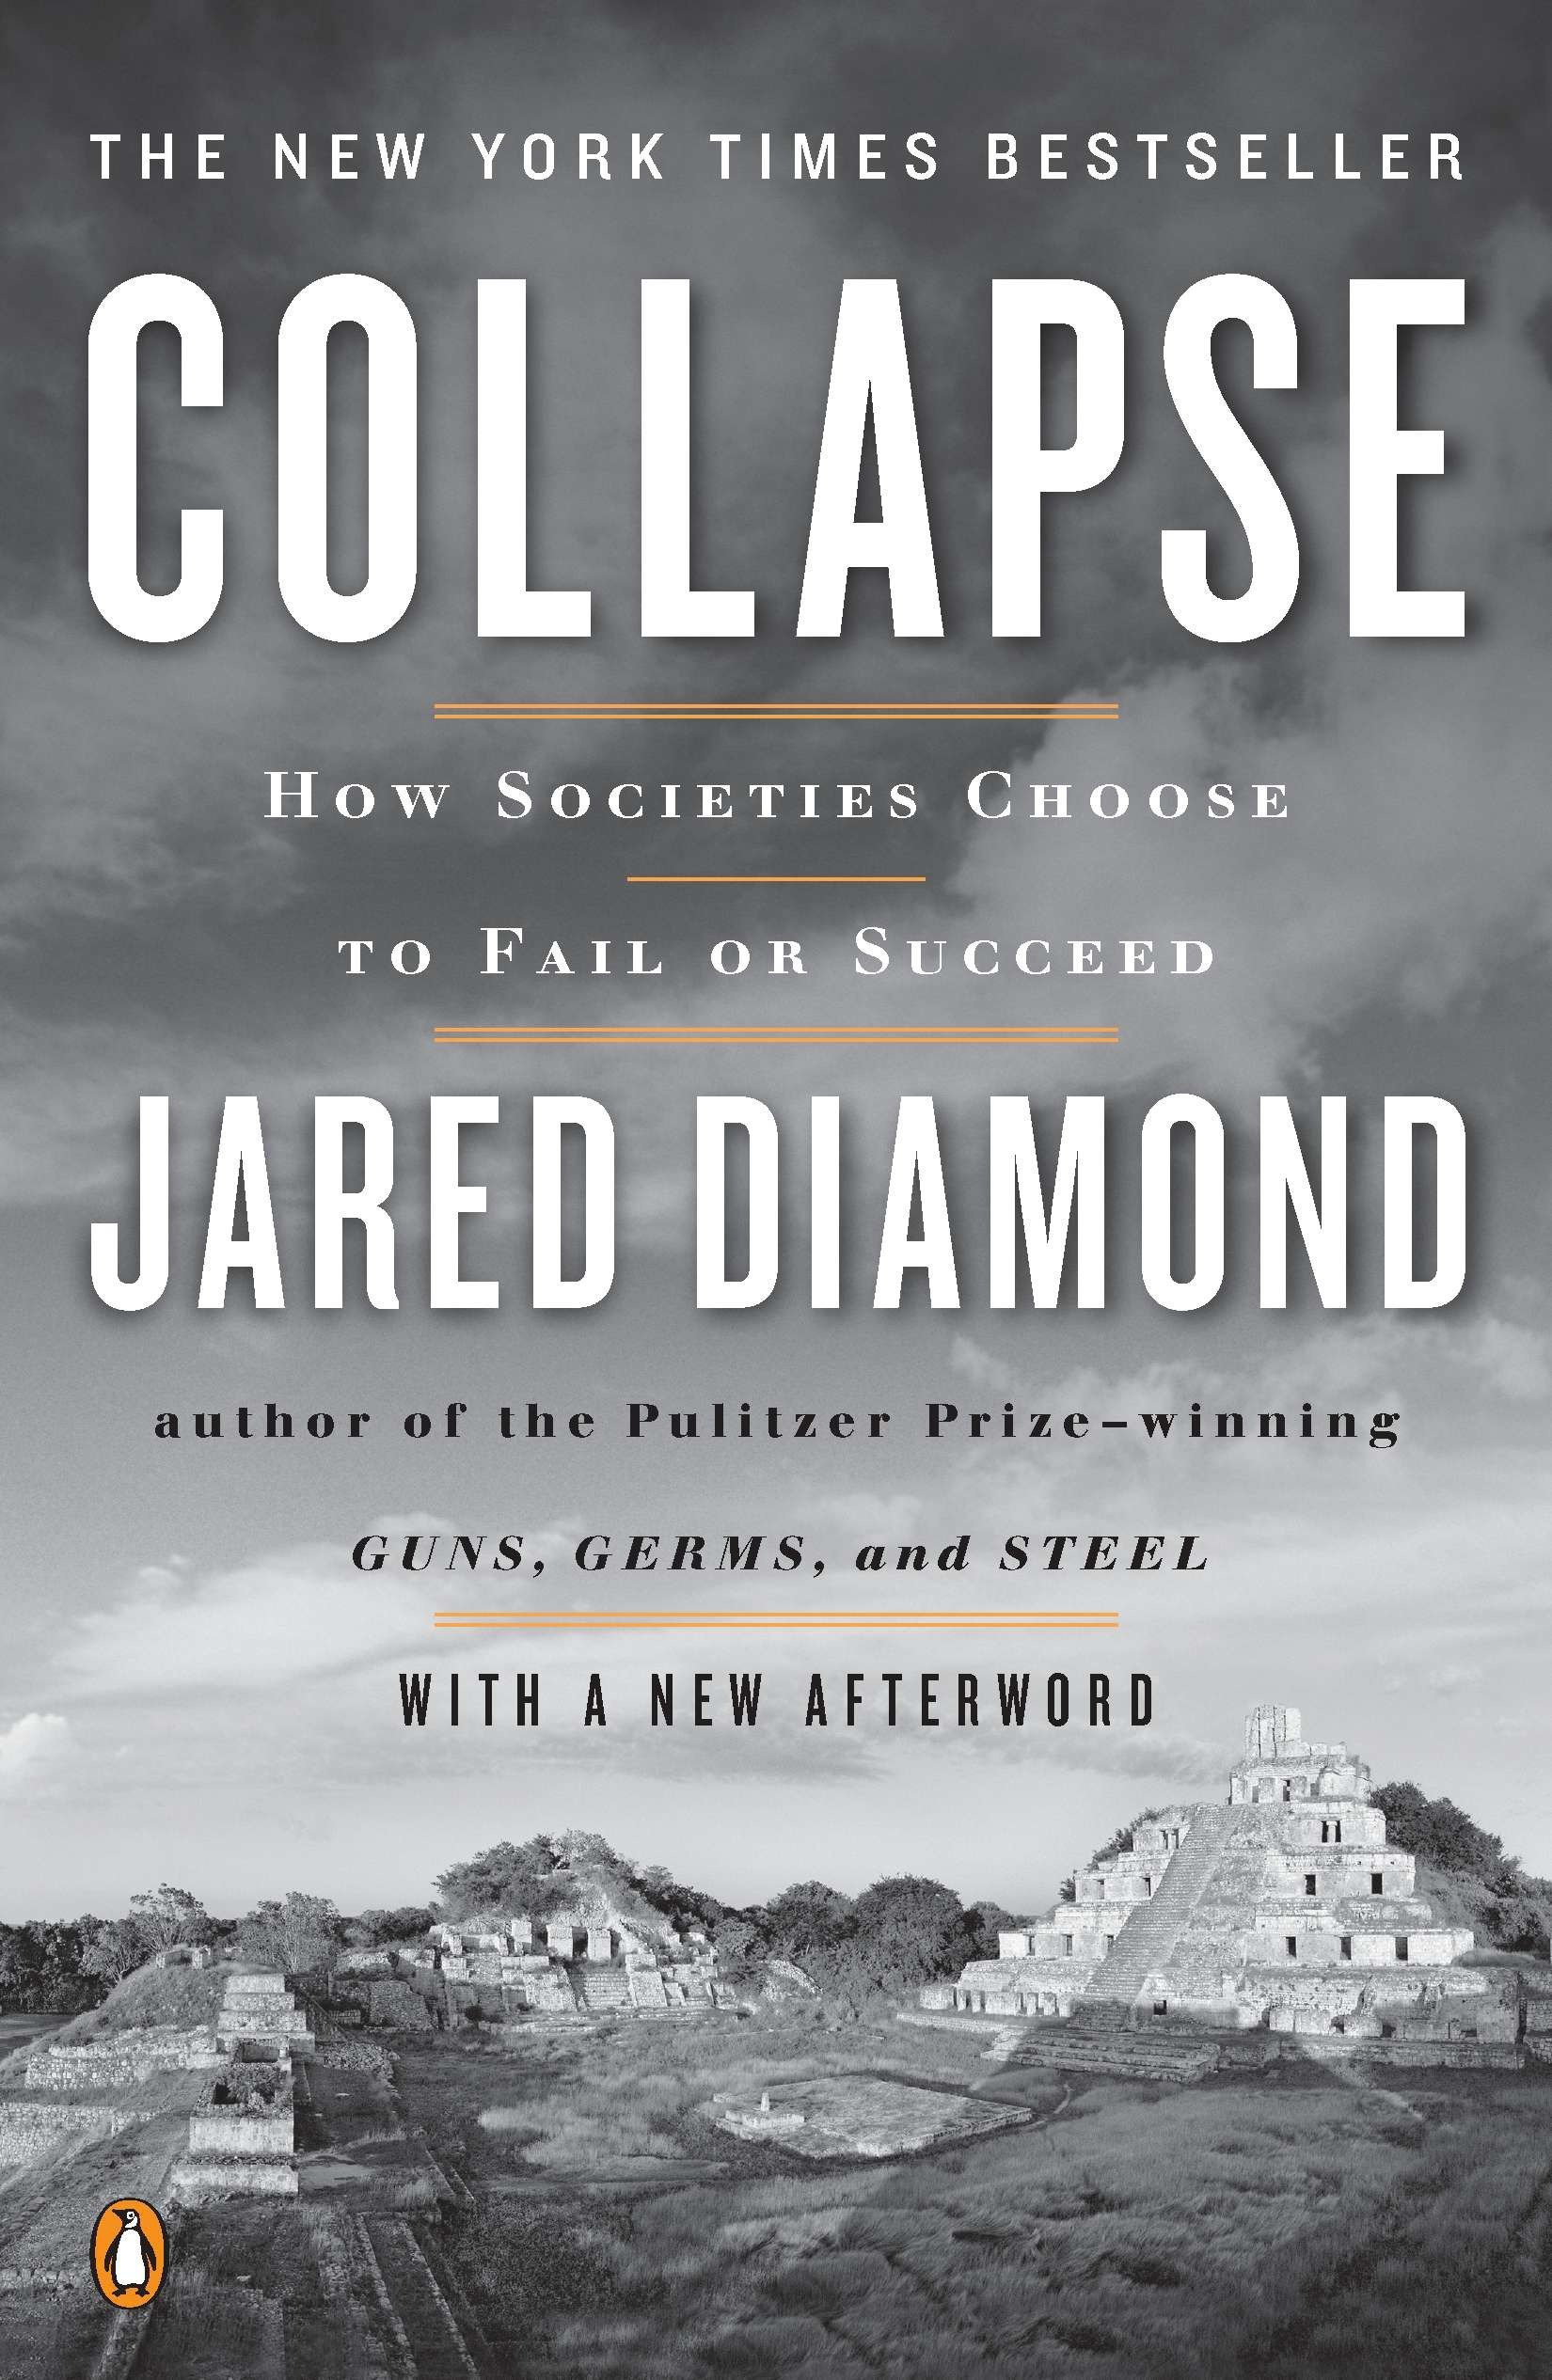 collapse: how societies choose to fail or succeed - By Jared DiamondJared Diamond's Collapse: How Societies Choose to Fail or Succeed is the glass-half-empty follow-up to his Pulitzer Prize-winning Guns, Germs, and Steel. While Guns, Germs, and Steel explained the geographic and environmental reasons why some human populations have flourished, Collapse uses the same factors to examine why ancient societies, including the Anasazi of the American Southwest and the Viking colonies of Greenland, as well as modern ones such as Rwanda, have fallen apart. Not every collapse has an environmental origin, but an eco-meltdown is often the main catalyst, he argues, particularly when combined with society's response to (or disregard for) the coming disaster. Still, right from the outset of Collapse, the author makes clear that this is not a mere environmentalist's diatribe. He begins by setting the book's main question in the small communities of present-day Montana as they face a decline in living standards and a depletion of natural resources. Once-vital mines now leak toxins into the soil, while prion diseases infect some deer and elk and older hydroelectric dams have become decrepit. On all these issues, and particularly with the hot-button topic of logging and wildfires, Diamond writes with equanimity.Because he's addressing such significant issues within a vast span of time, Diamond can occasionally speak too briefly and assume too much, and at times his shorthand remarks may cause careful readers to raise an eyebrow. But in general, Diamond provides fine and well-reasoned historical examples, making the case that many times, economic and environmental concerns are one and the same. With Collapse, Diamond hopes to jog our collective memory to keep us from falling for false analogies or forgetting prior experiences, and thereby save us from potential devastations to come. While it might seem a stretch to use medieval Greenland and the Maya to convince a skeptic about the seriousness of global warming, it's exactly this type of cross-referencing that makes Collapse so compelling.